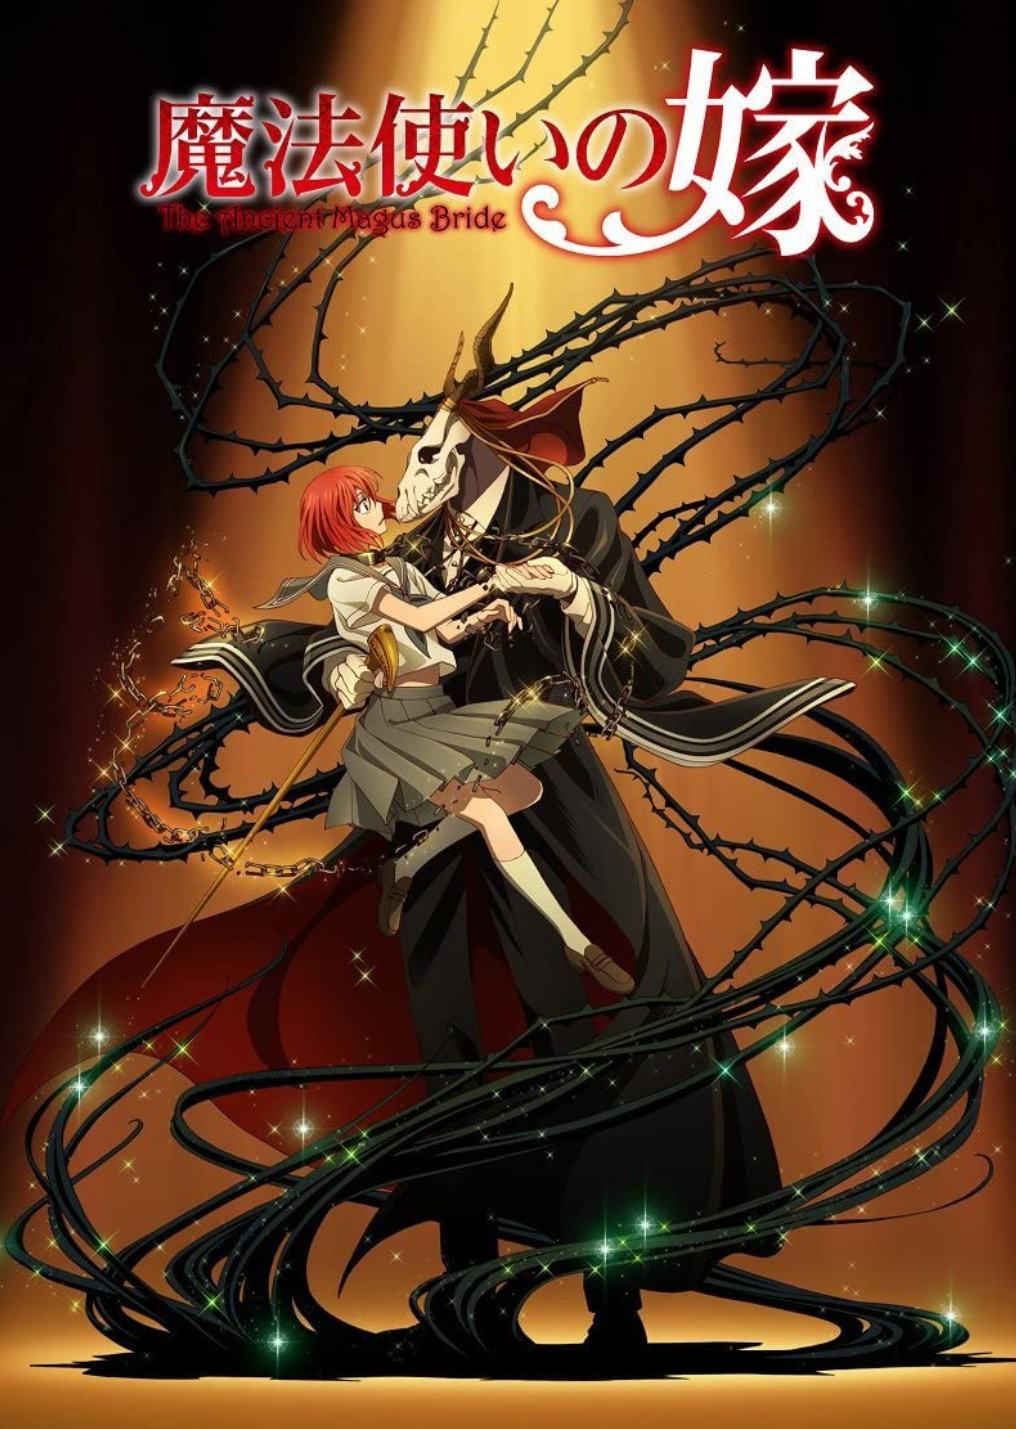 Fantasy Anime 13 - the ancient magus' bride